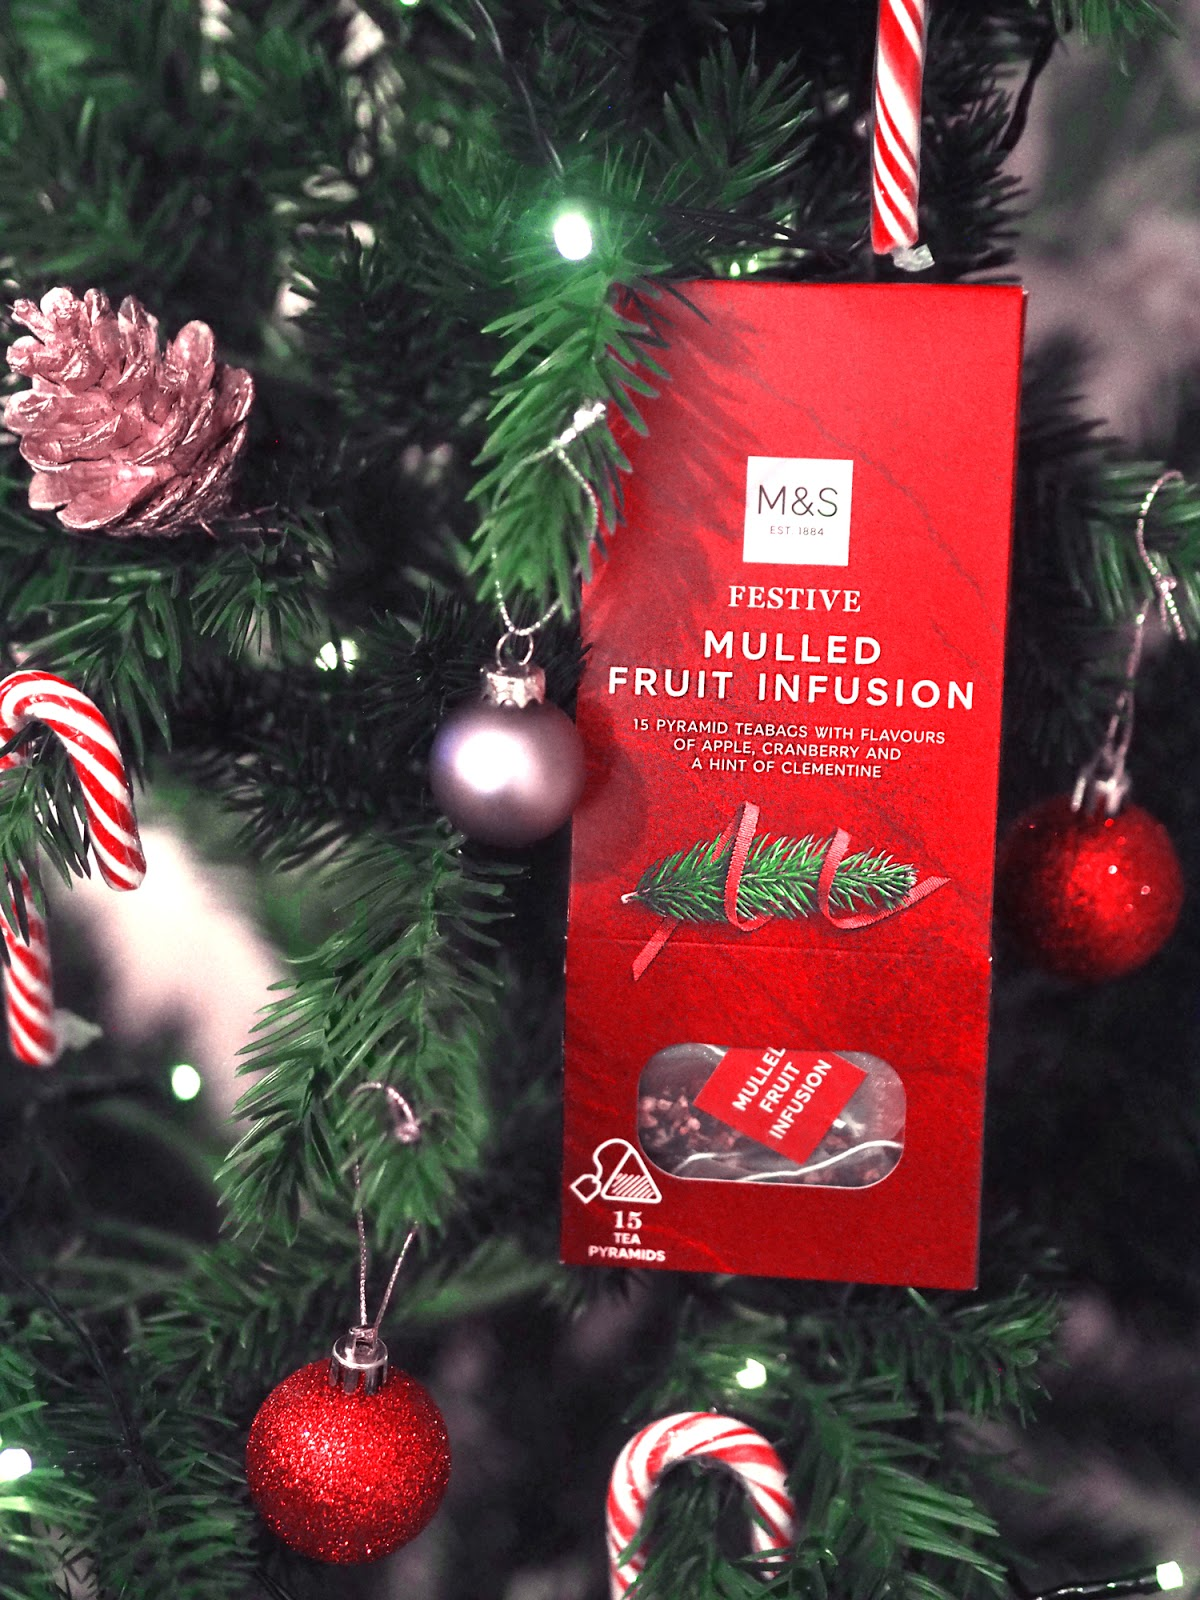 M&S Festive Mulled Fruit Infusion